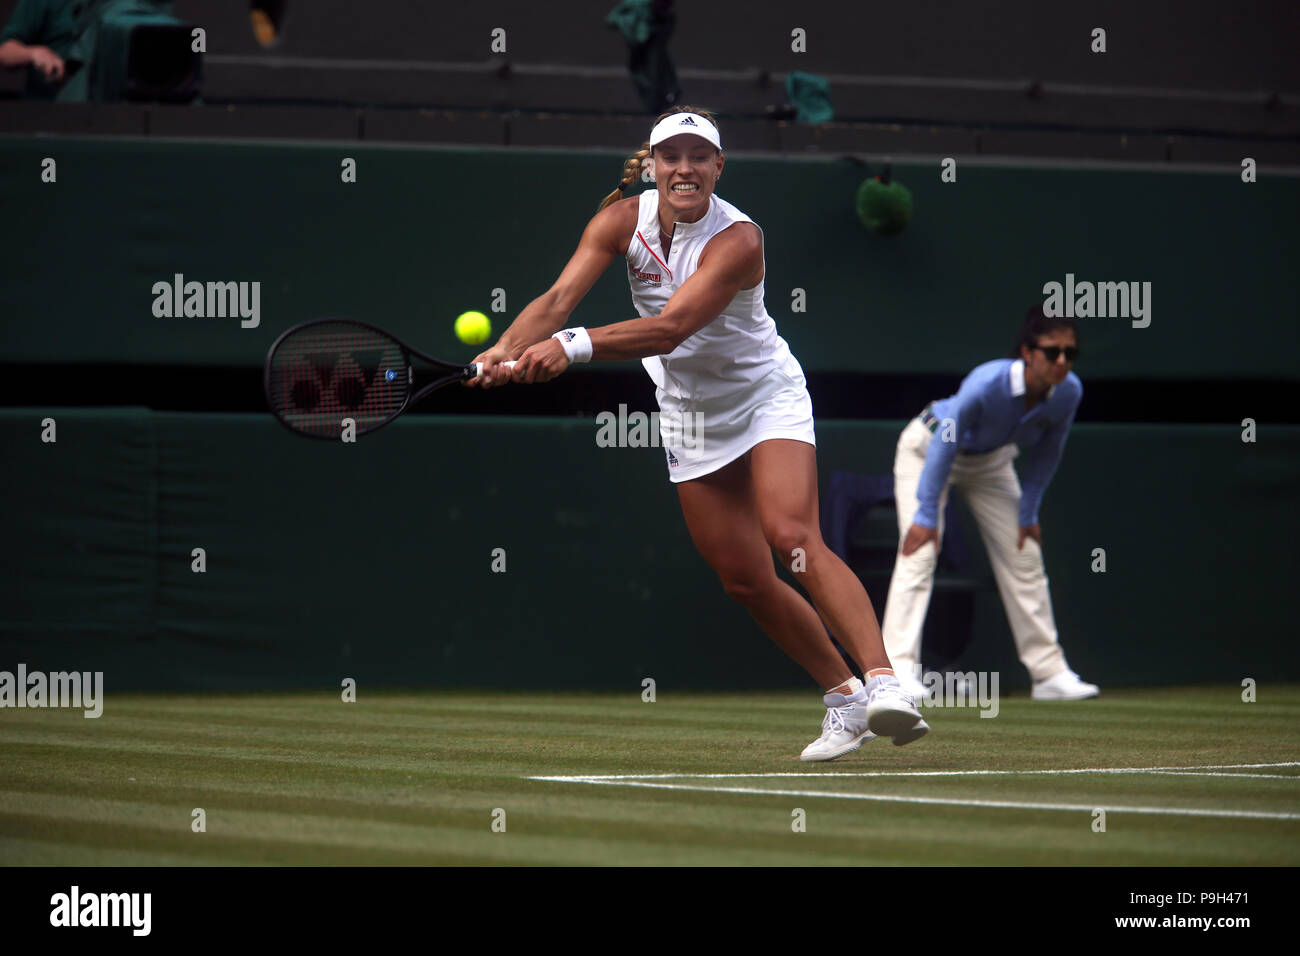 London, England - July 7, 2018.  Wimbledon Tennis: Germany's Angie Kerber strikes a backhand to her opponent Naomi Osaka of Japan during their third r - Stock Image